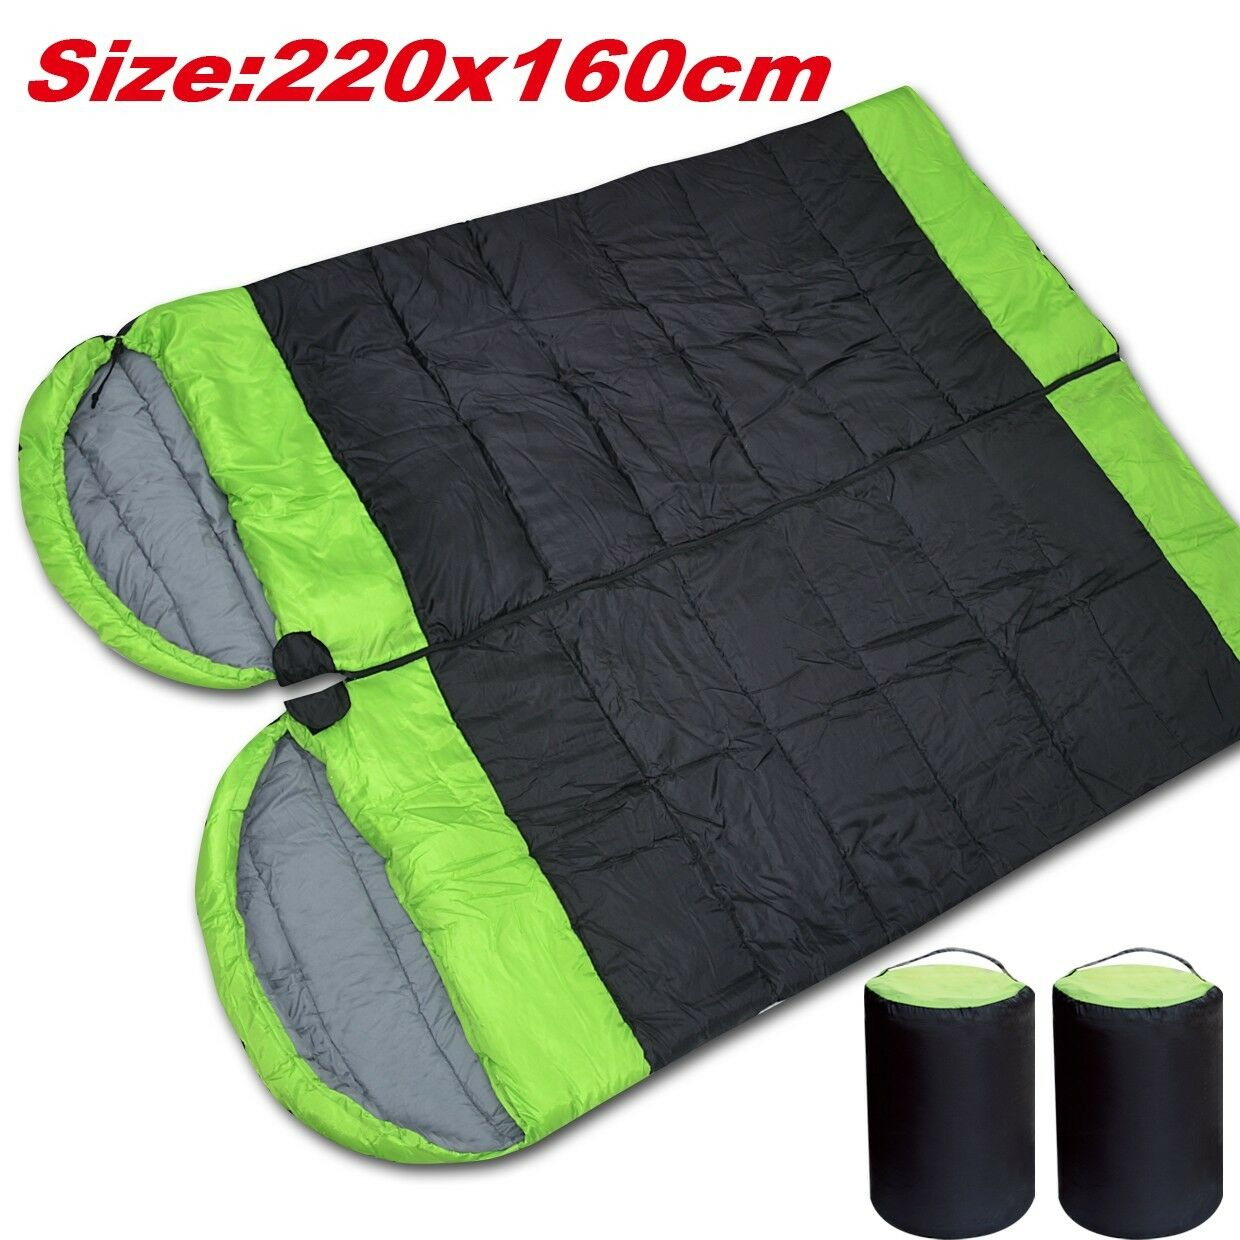 Double Conjoined Hooded  Sleeping Bag Outdoor Camping or Indoor Sleep  promotions